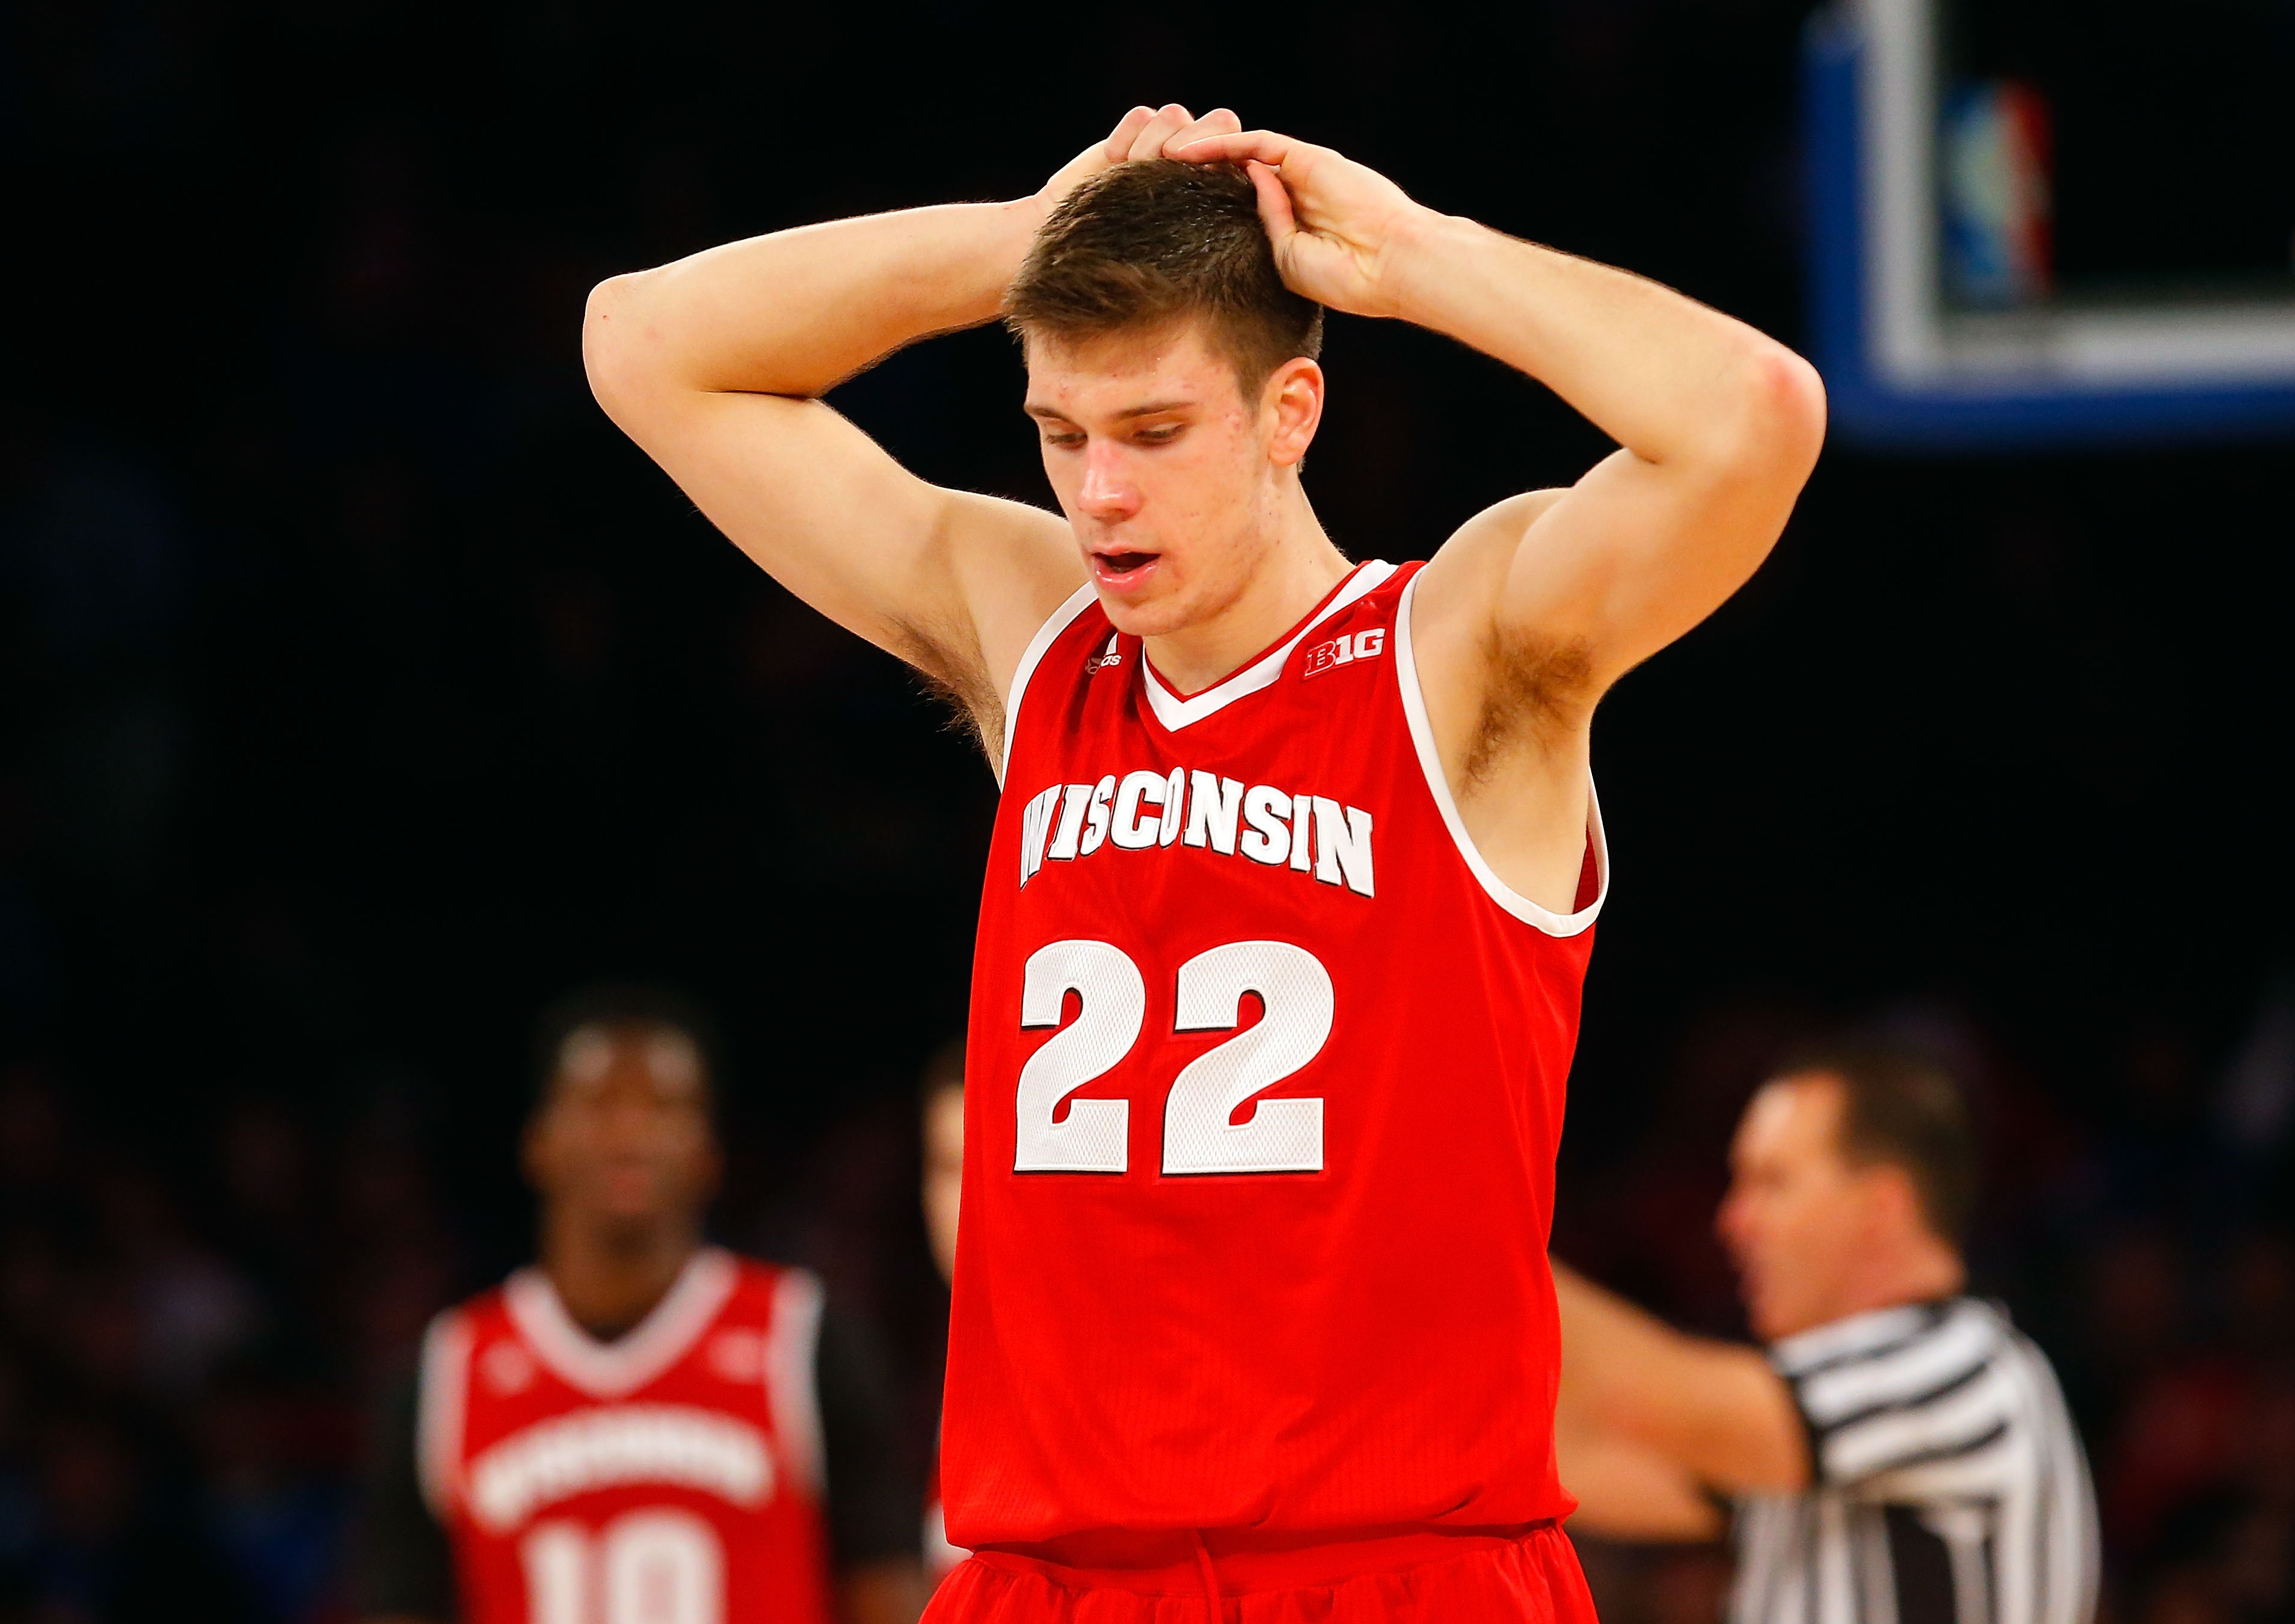 NEW YORK, NY - NOVEMBER 20:  Ethan Happ #22 of the Wisconsin Badgers looks on late in the second half against the Georgetown Hoyas during the 2K Classic at Madison Square Garden on November 20, 2015 in New York City.  (Photo by Jim McIsaac/Getty Images)